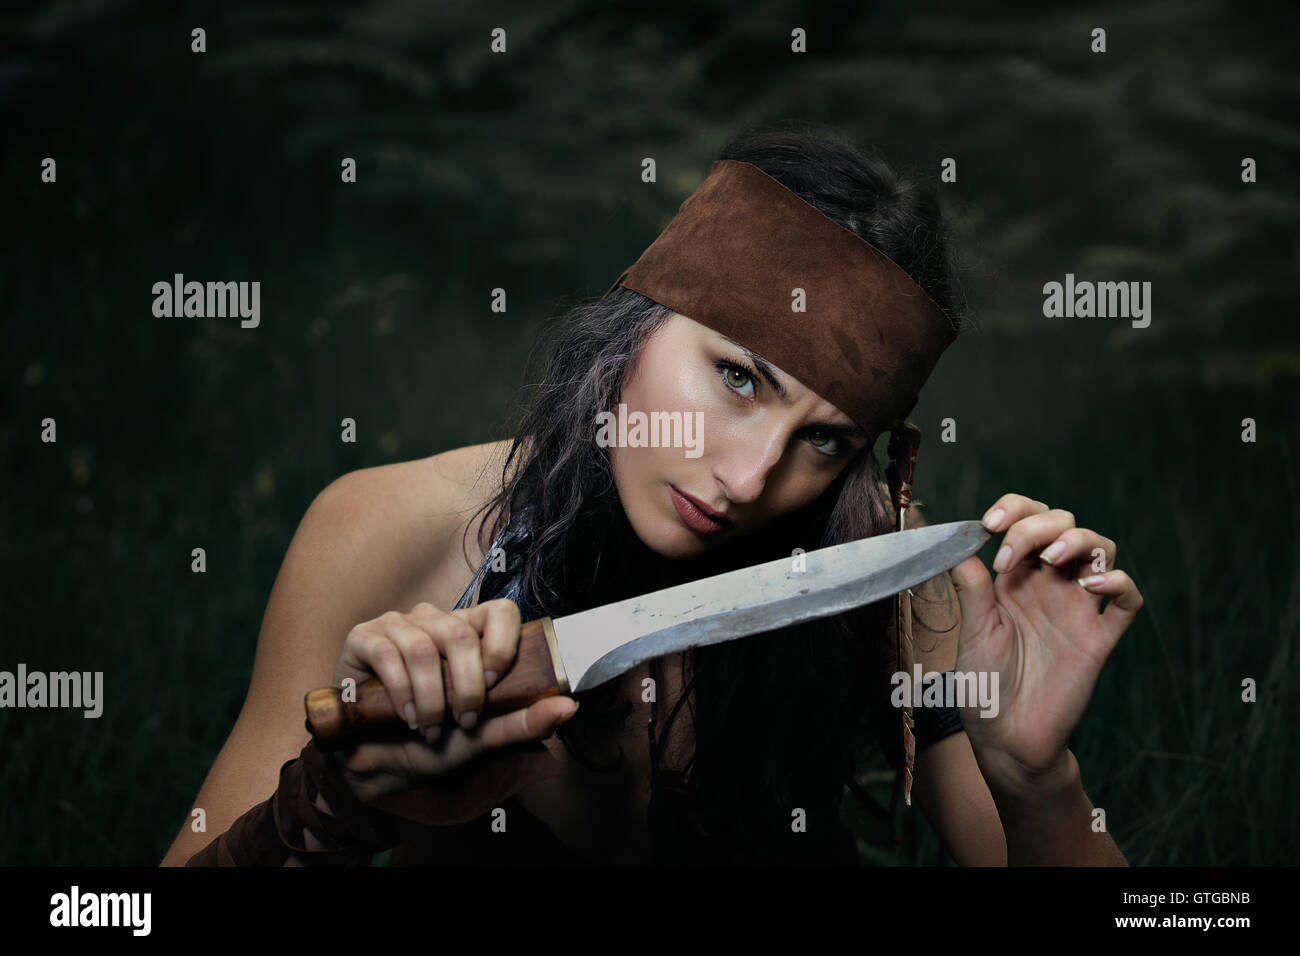 Dangerous gaze from indian hunter . Portrait with knife - Stock Image